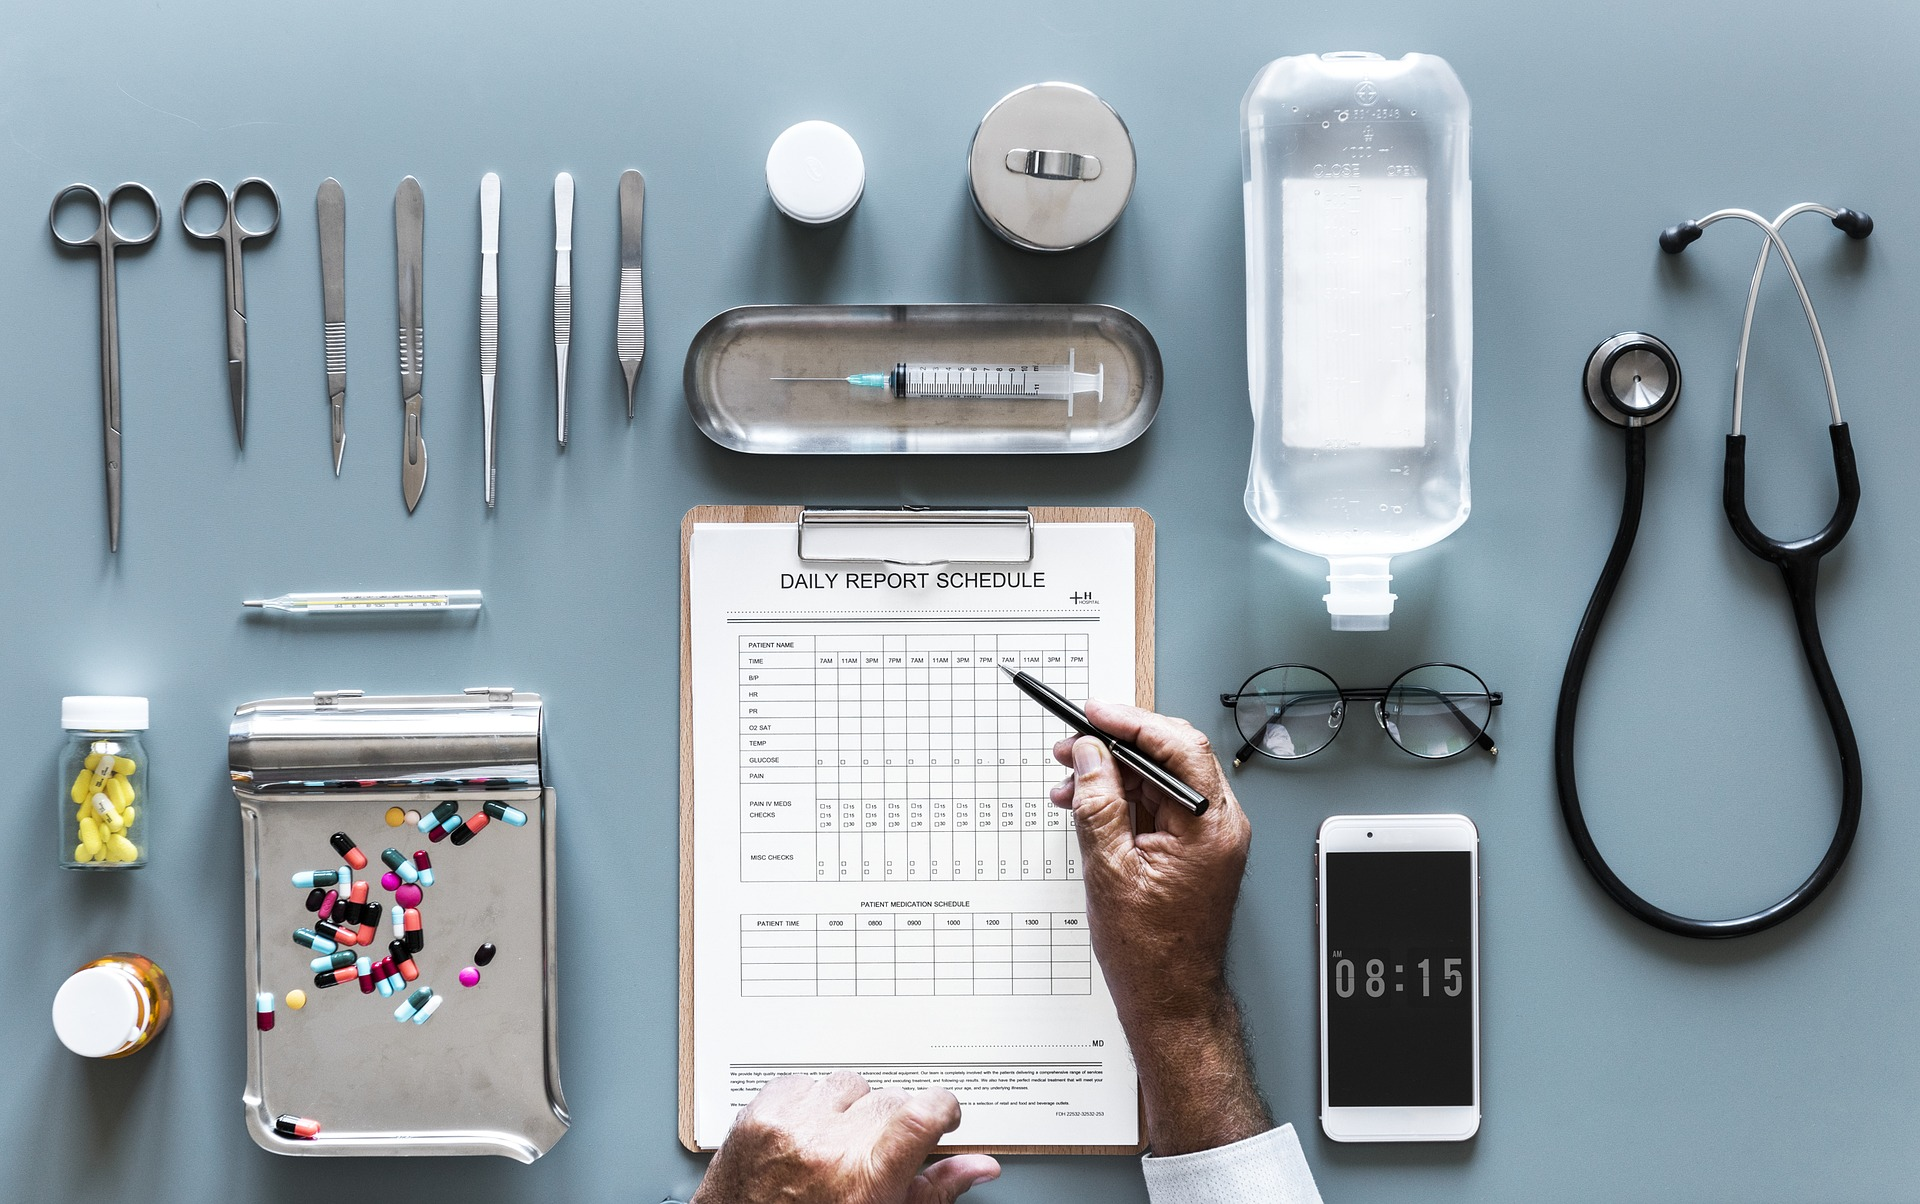 Doctor's equipment and notes